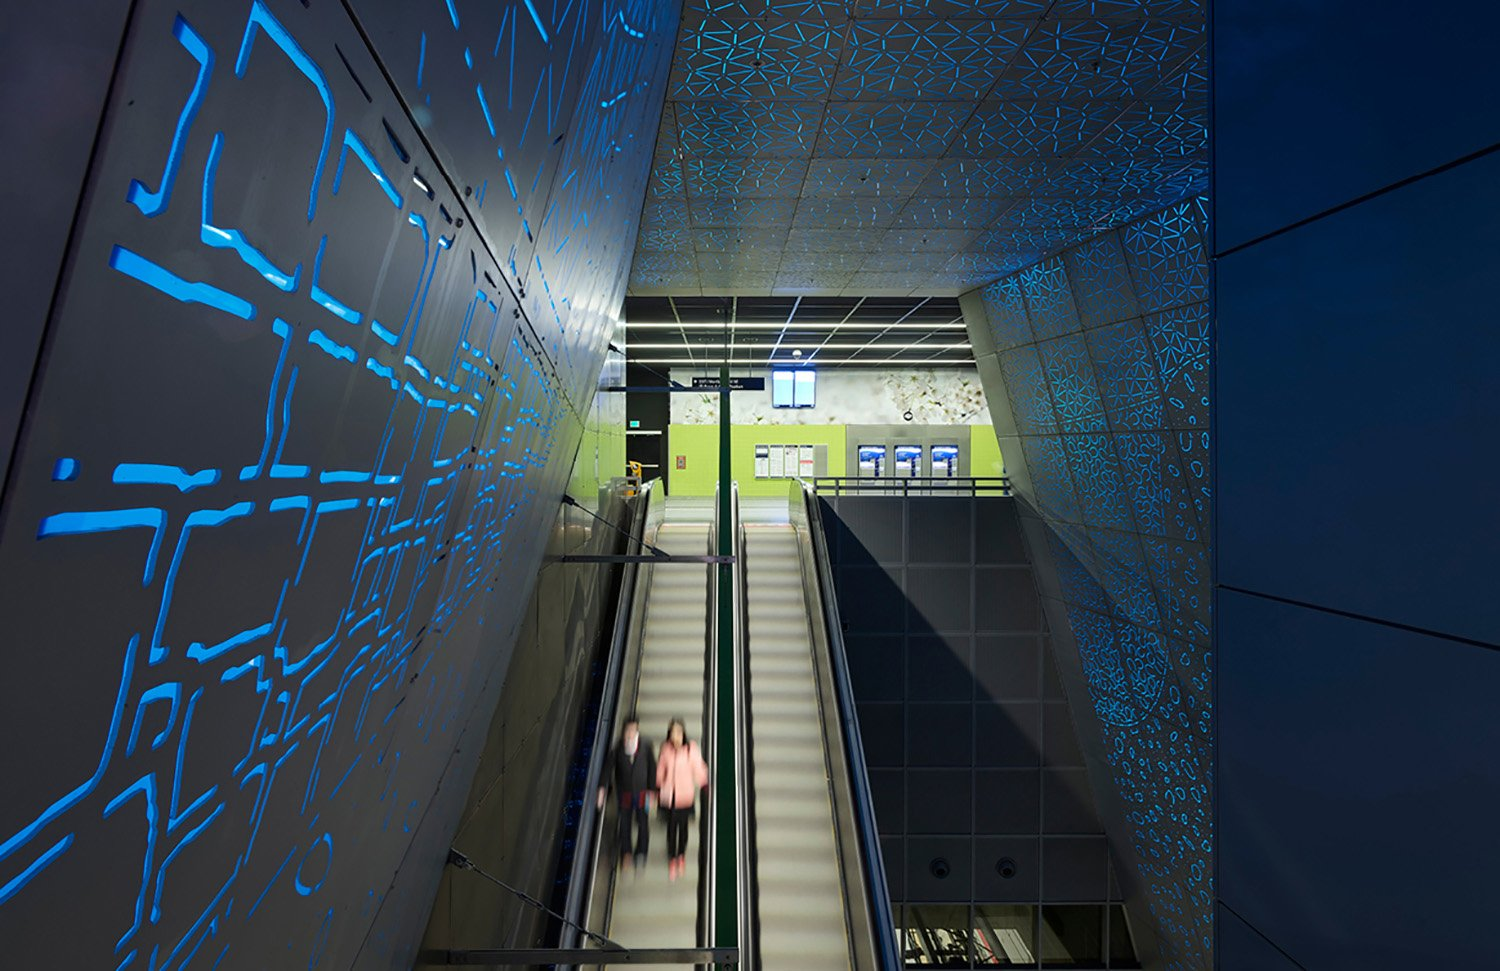 Between the surface and the train platform 100 feet below, circulation paths and visual connections between multiple levels orient users to the station's overall volume, structure and internal flow. Kevin Scott